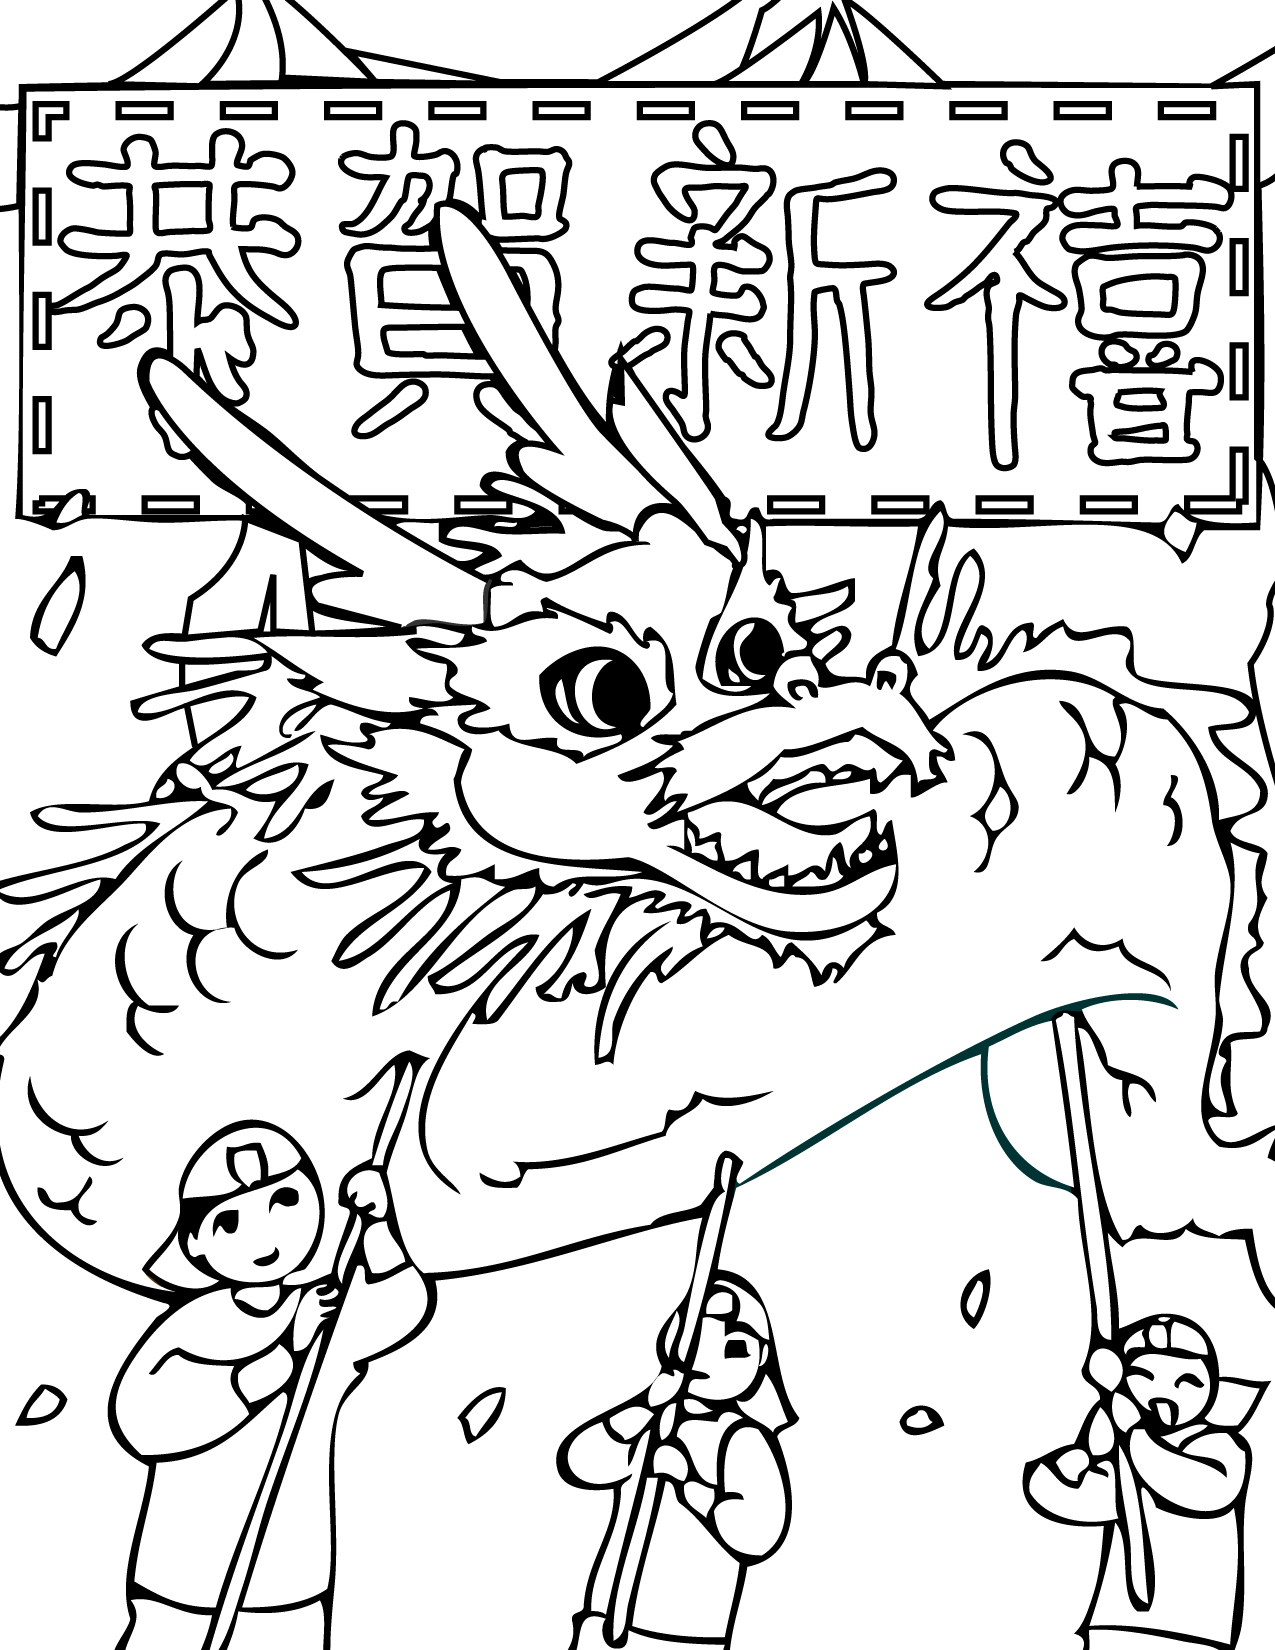 Chinese coloring pages to download